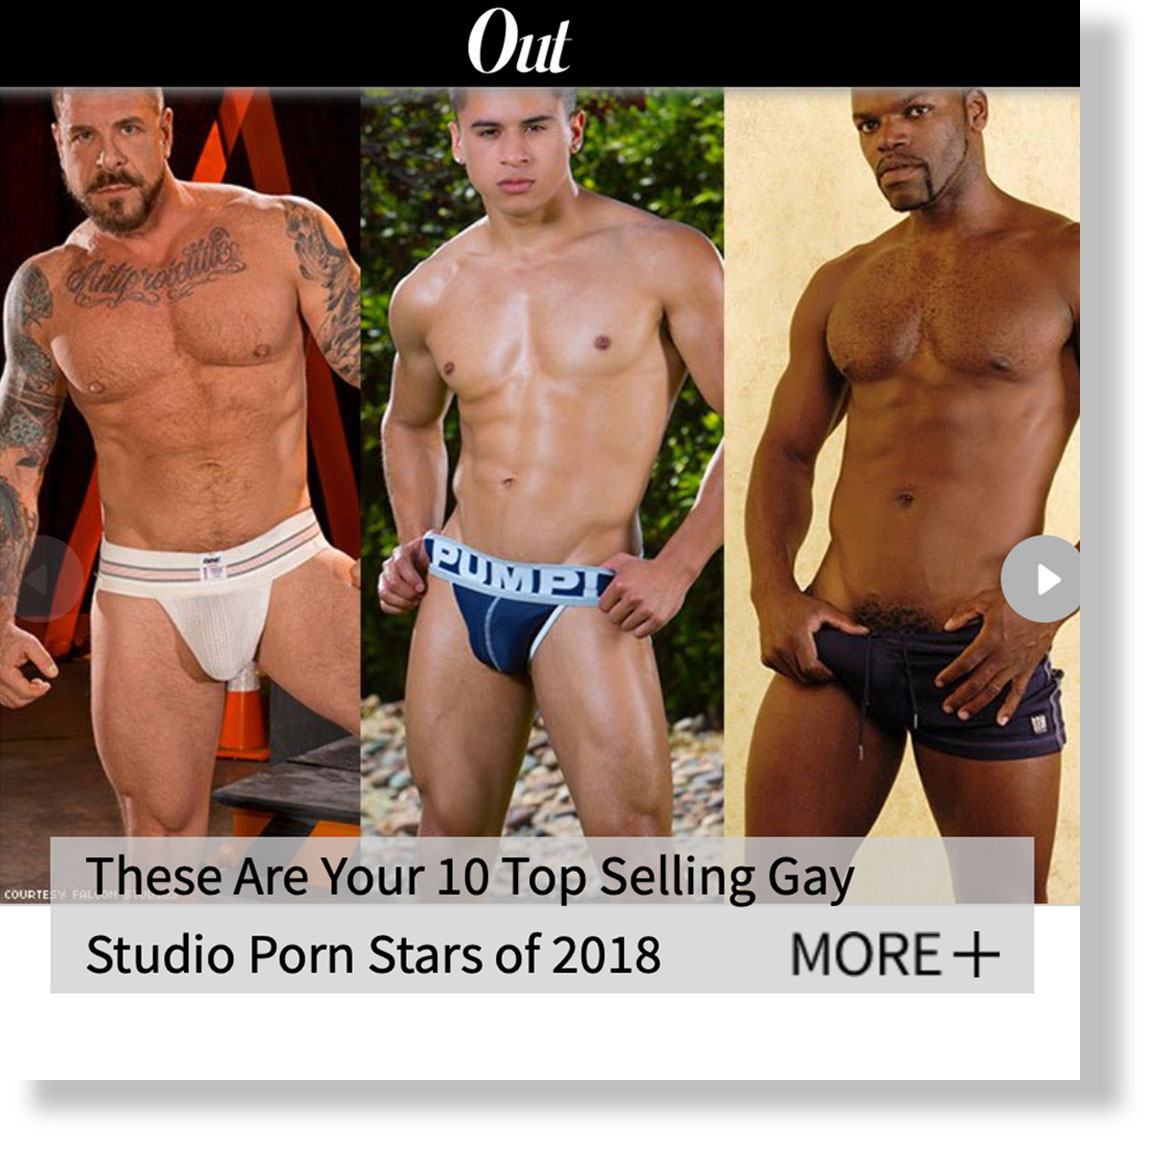 Rocco Steele on Out.com